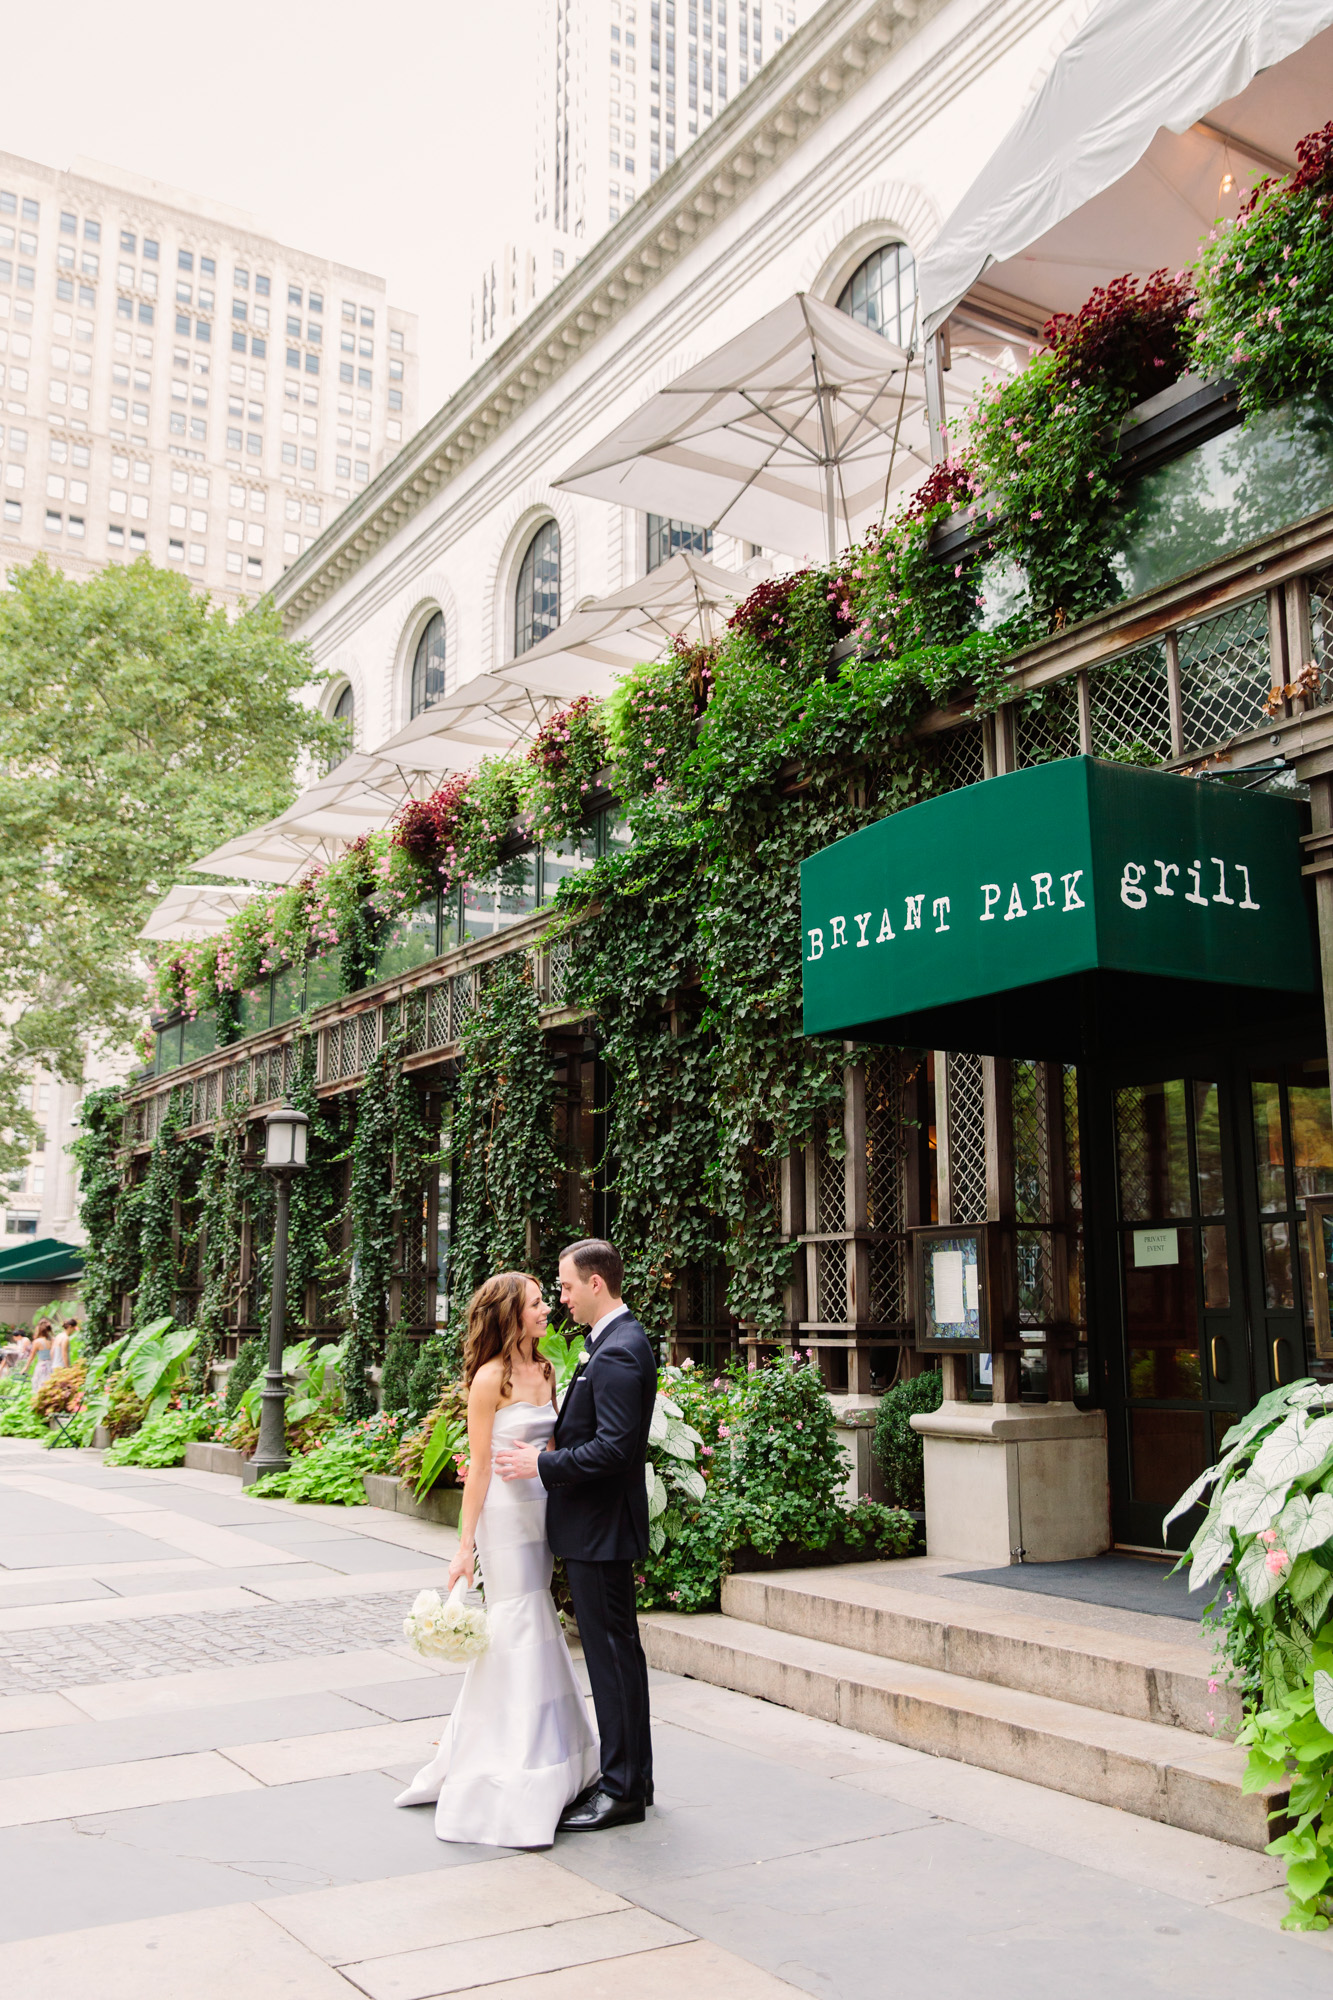 28_Ali_Lloyd_Bryant_Park_Grill_Wedding_NYC_Tanya_Salazar_Photography_219.jpg